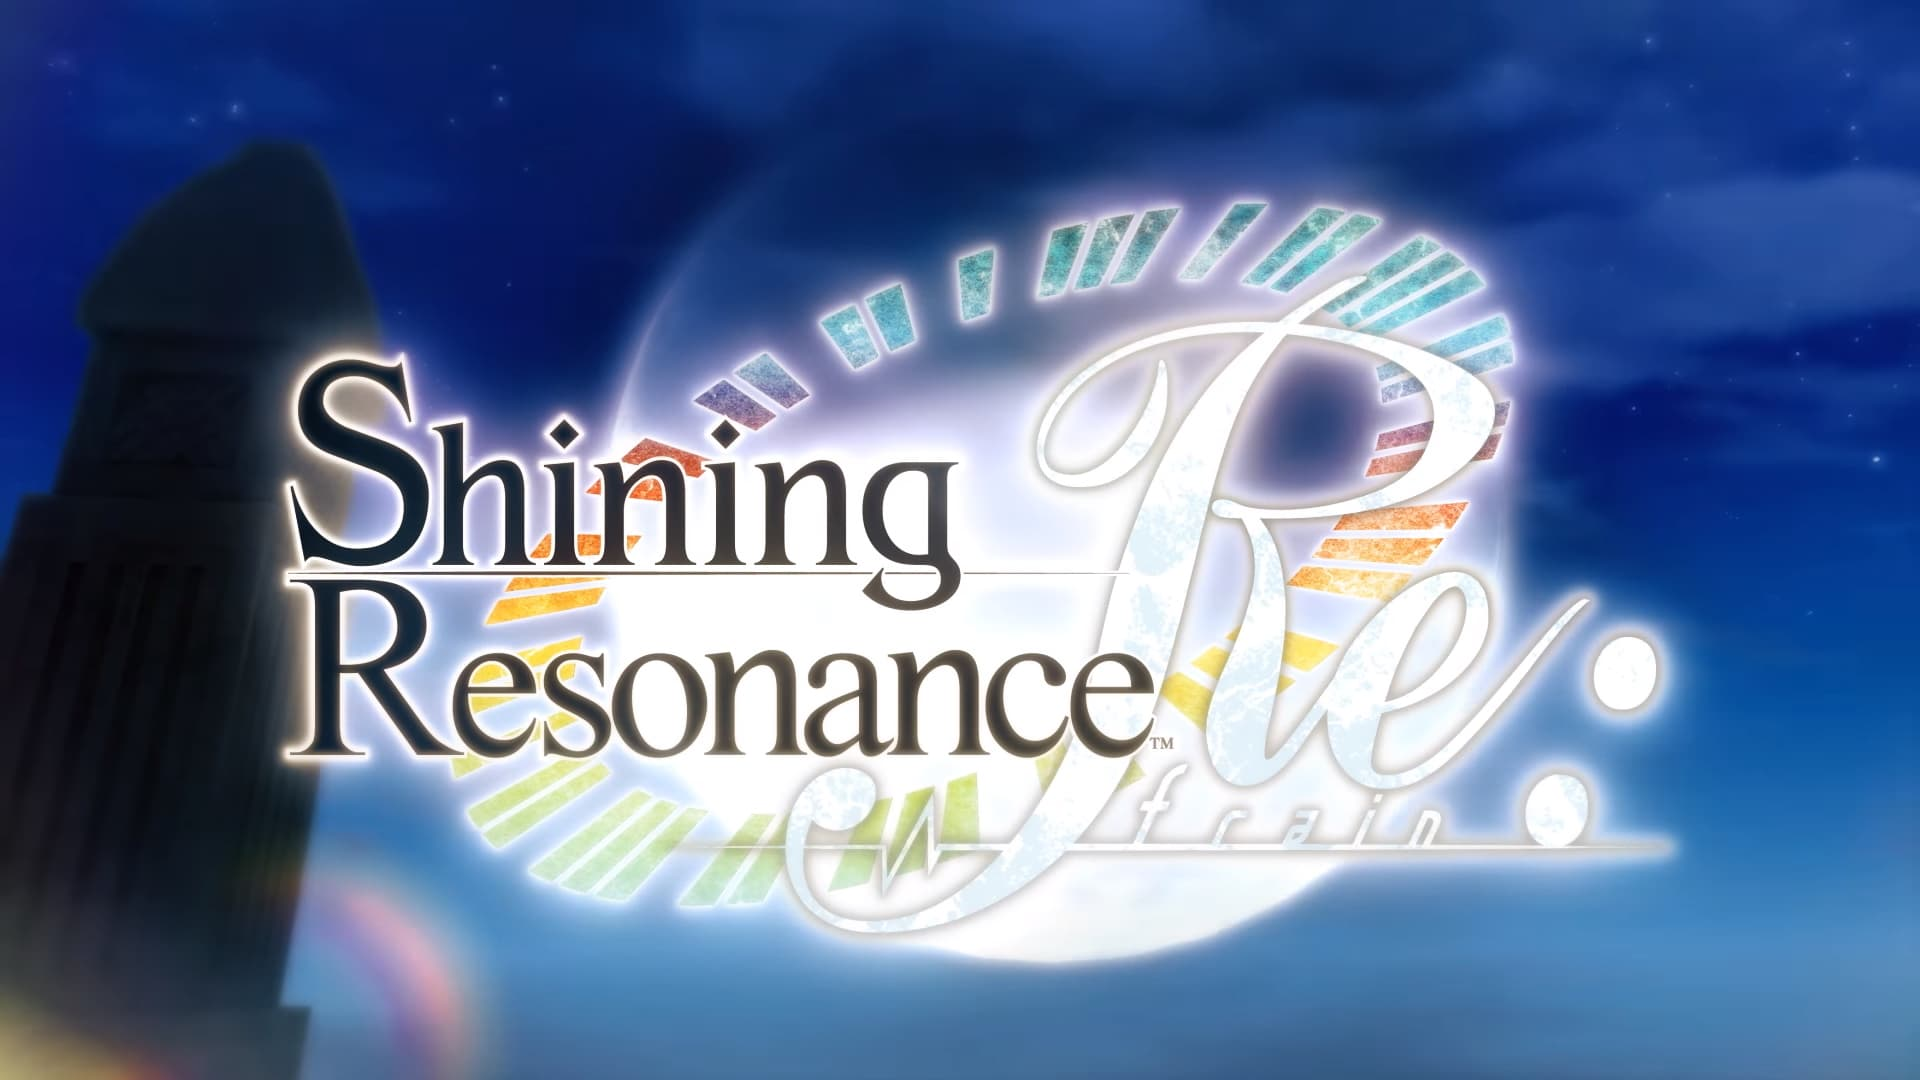 Shining Resonance Refrain launch trailer